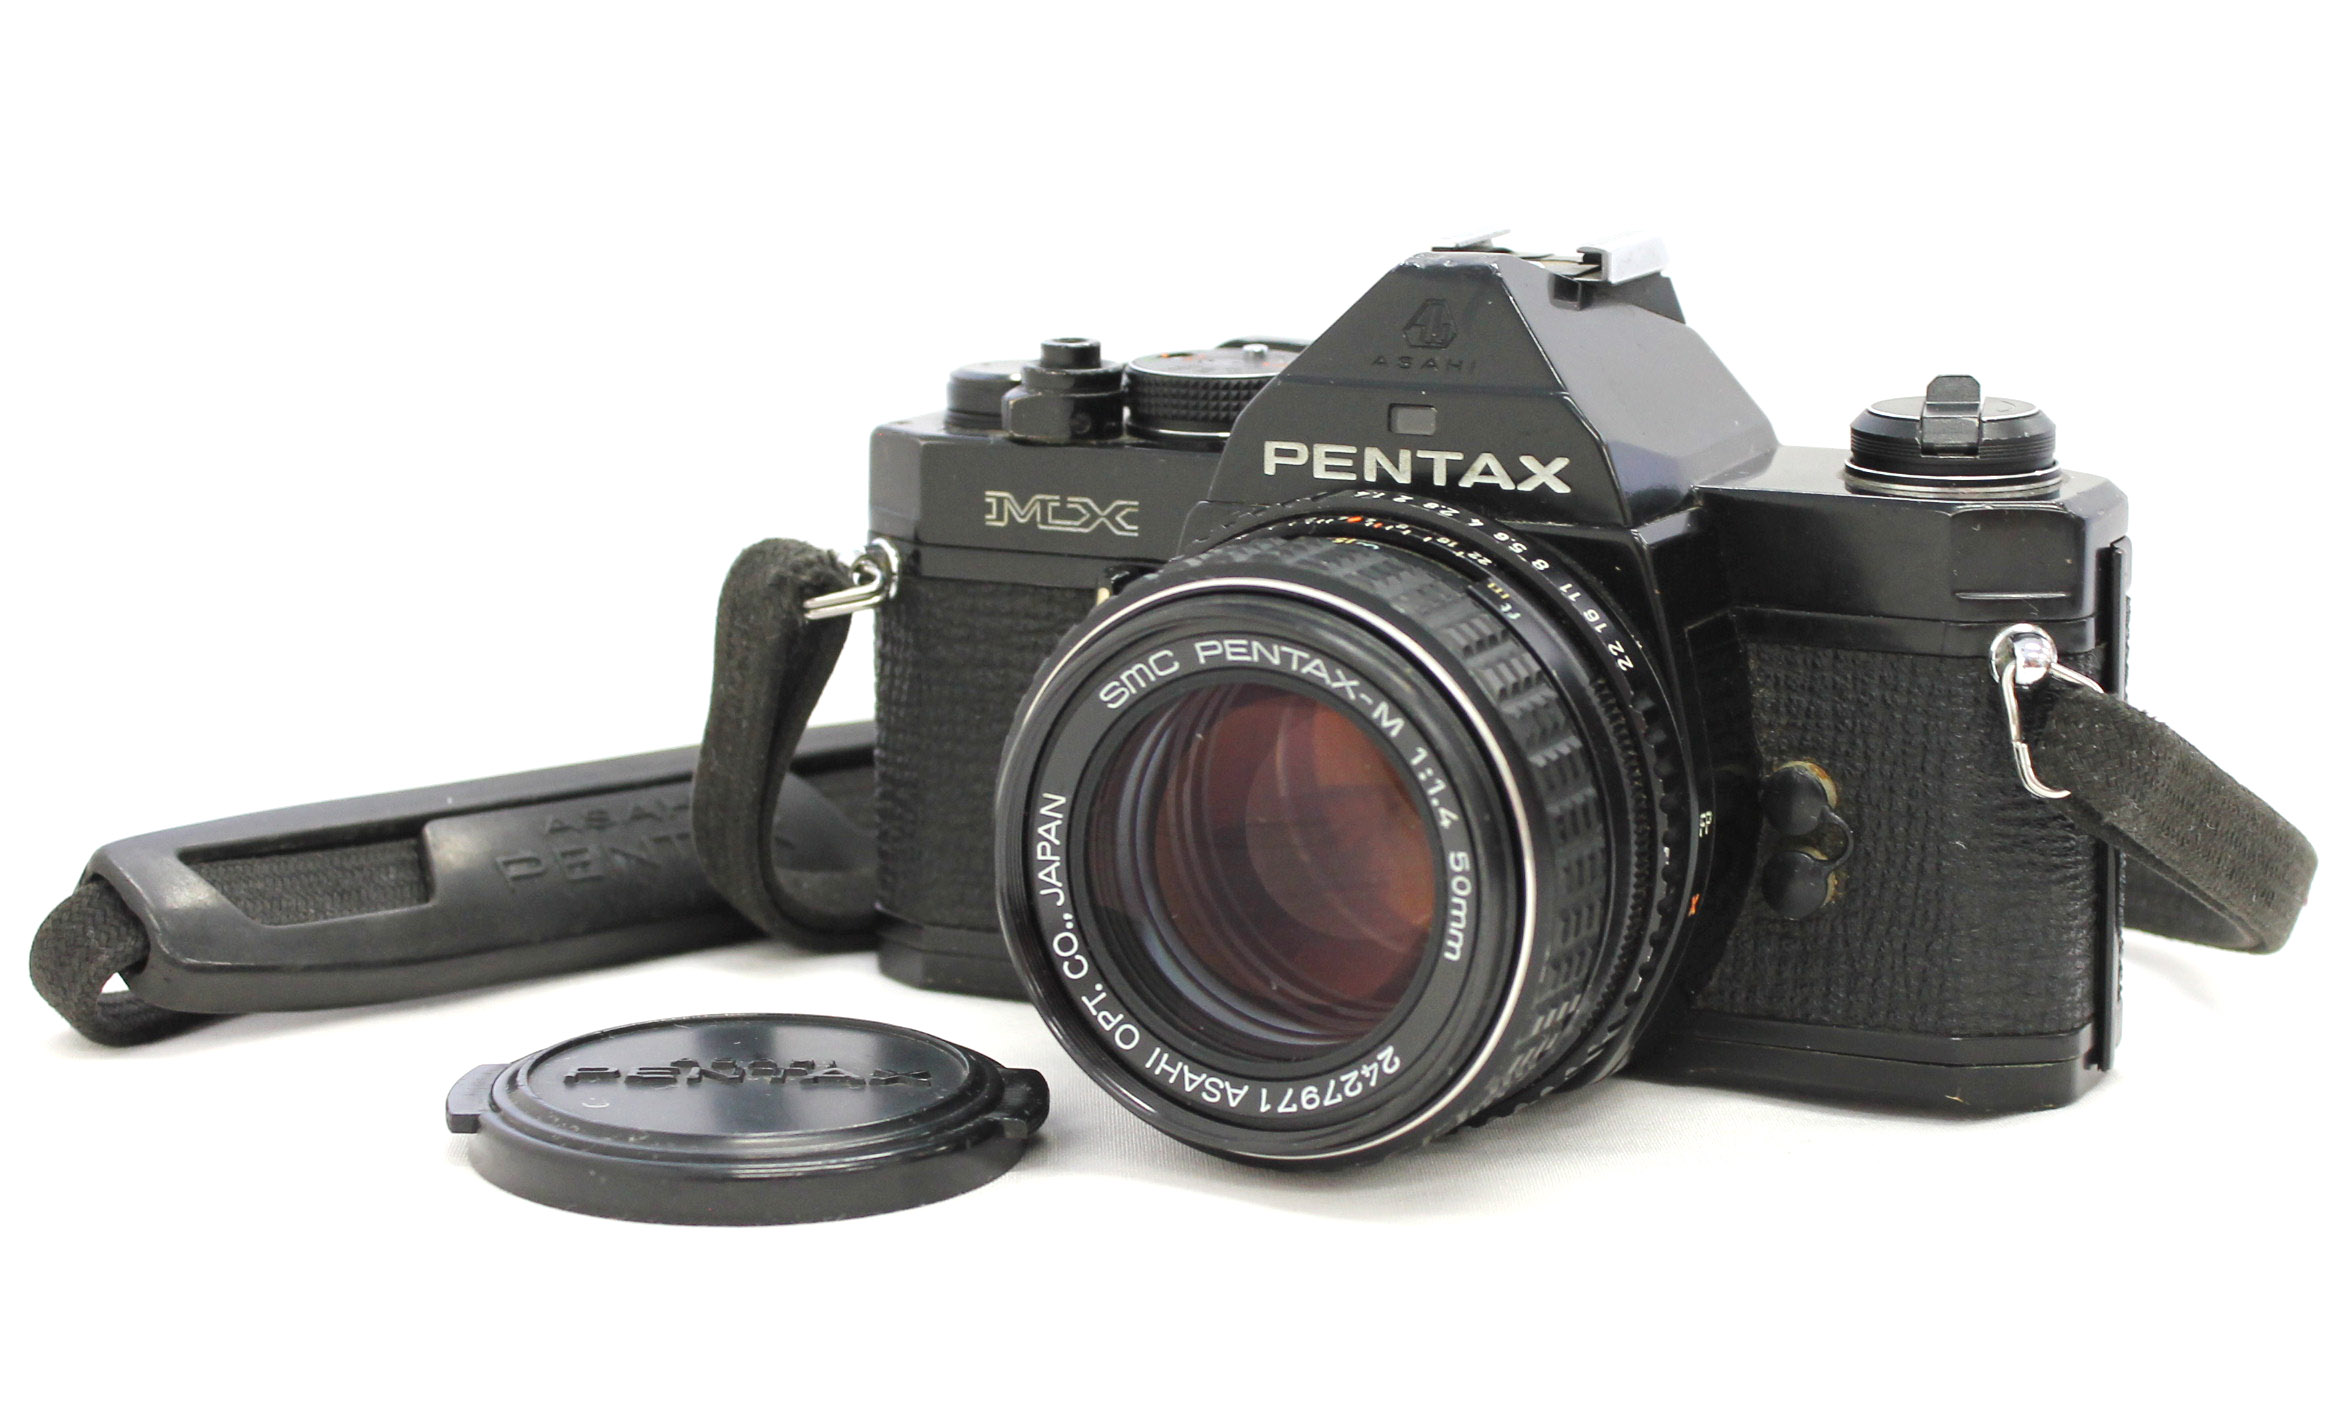 Japan Used Camera Shop | Pentax MX SLR 35mm Film Camera with SMC Pentax-M 50mm F/1.4 Lens from Japan